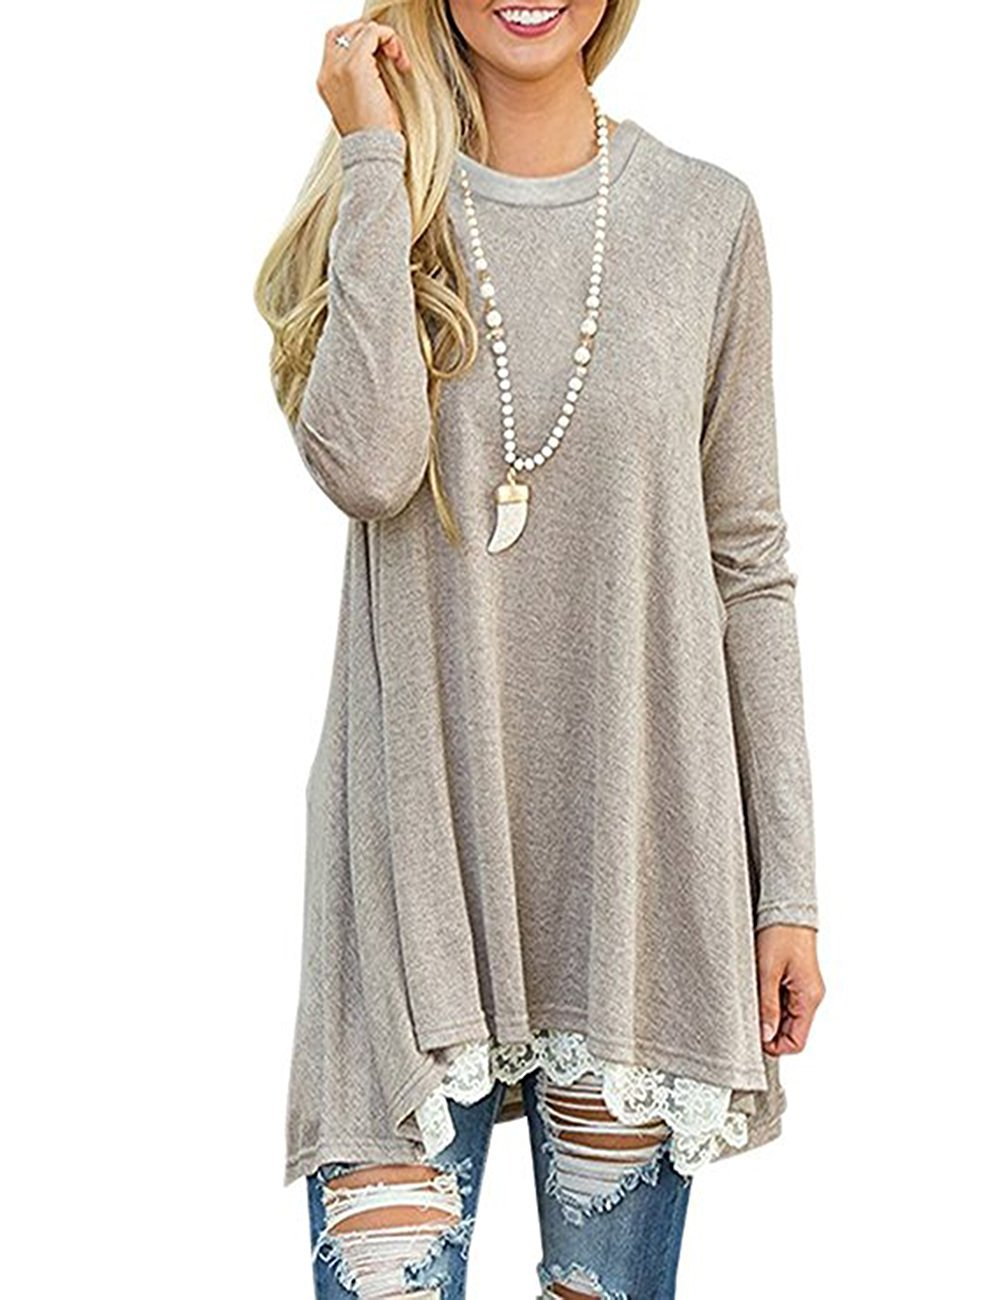 Andaa Women's Crew Neck Long Sleeve Lace Splicing Swing Shirt Dresses Long Tunic Blouses Shirts for Leggings (Large, Khaki)